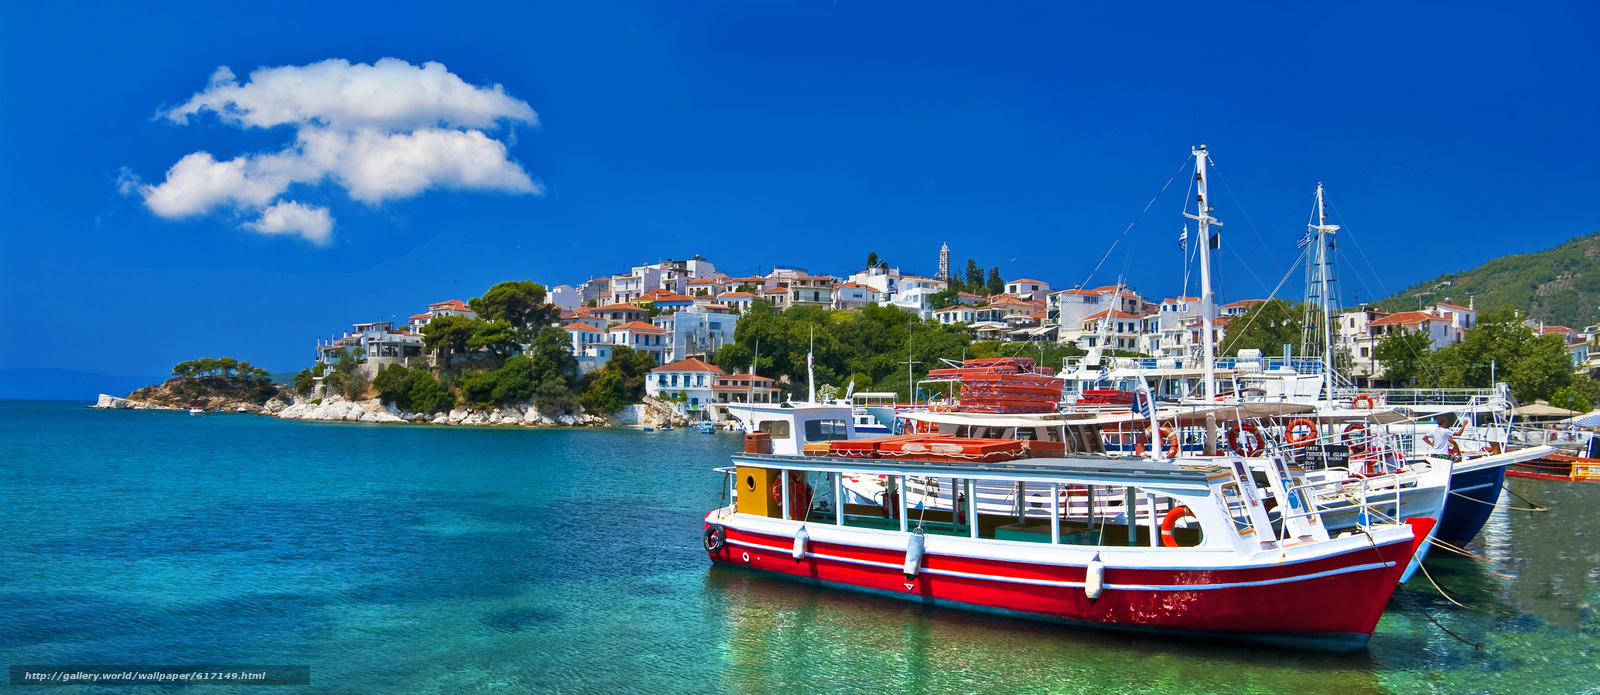 boats, harbor, Skopelos island, Greece, panorama